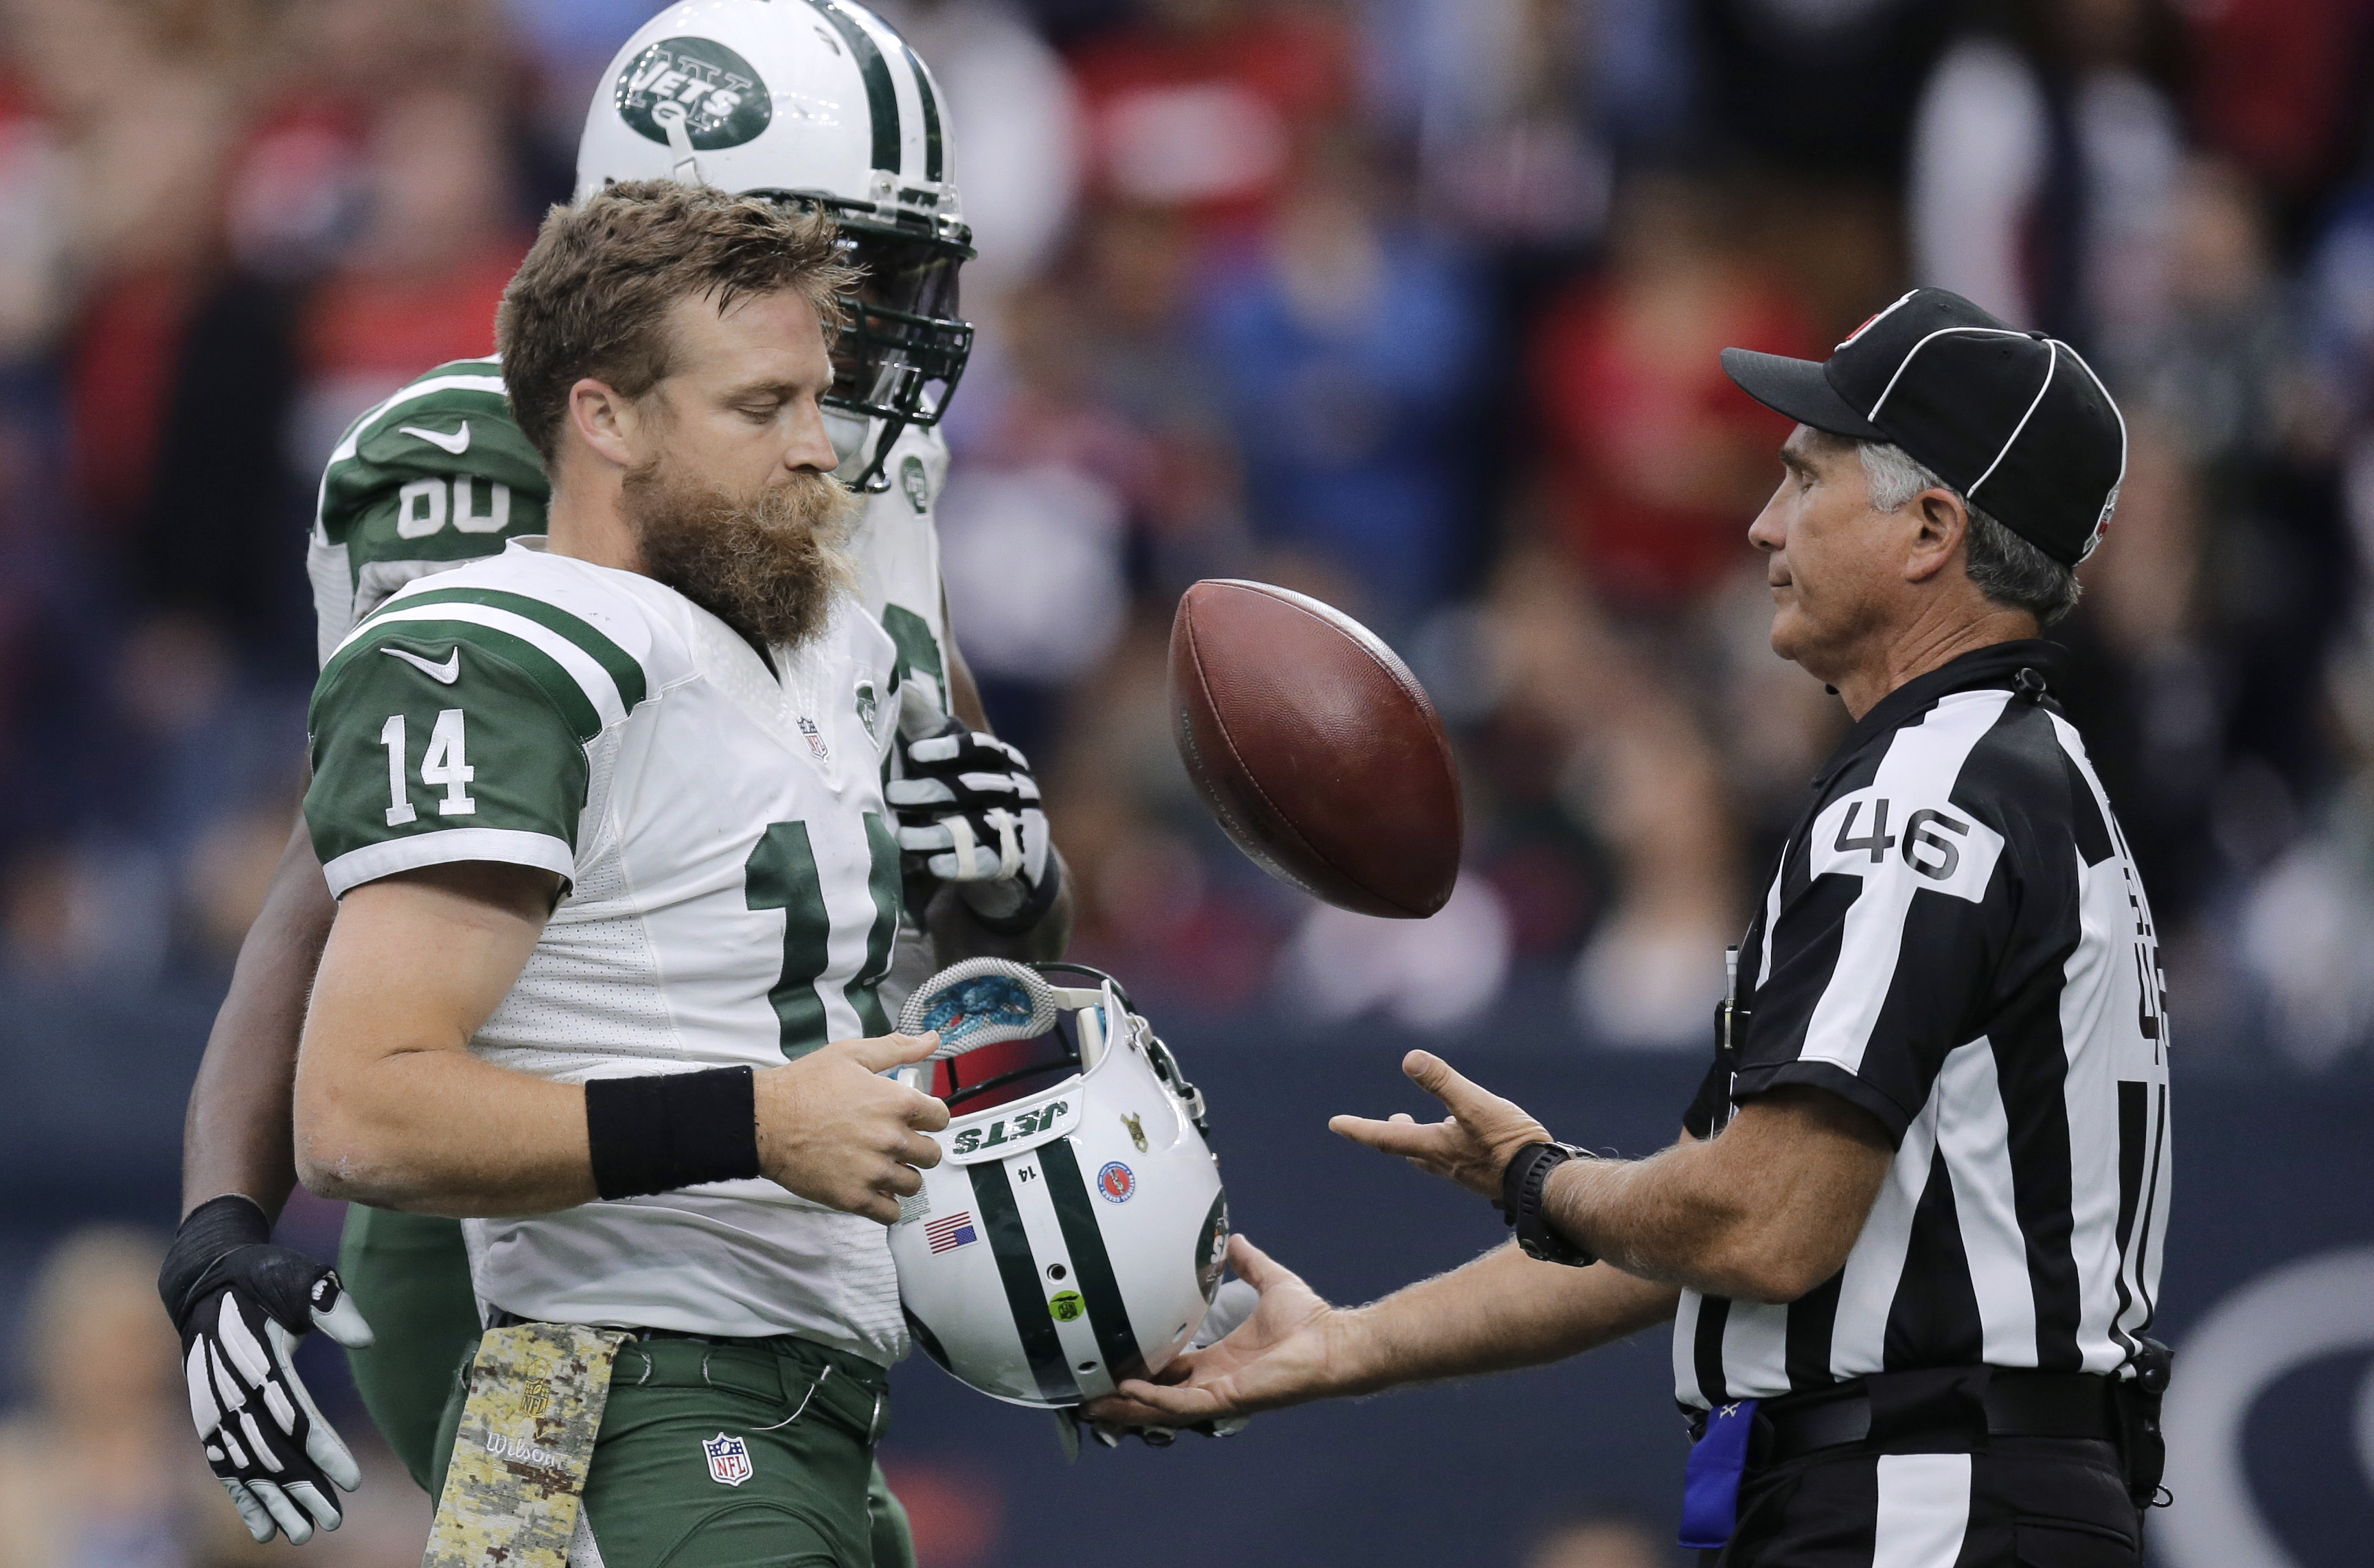 New York Jets quarterback Ryan Fitzpatrick (14) trades official Perry Paganelli (46) the ball for his helmet after he scored a touchdown against the Houston Texans during the second half of an NFL football game, Sunday, Nov. 22, 2015, in Houston. Fitzpatr